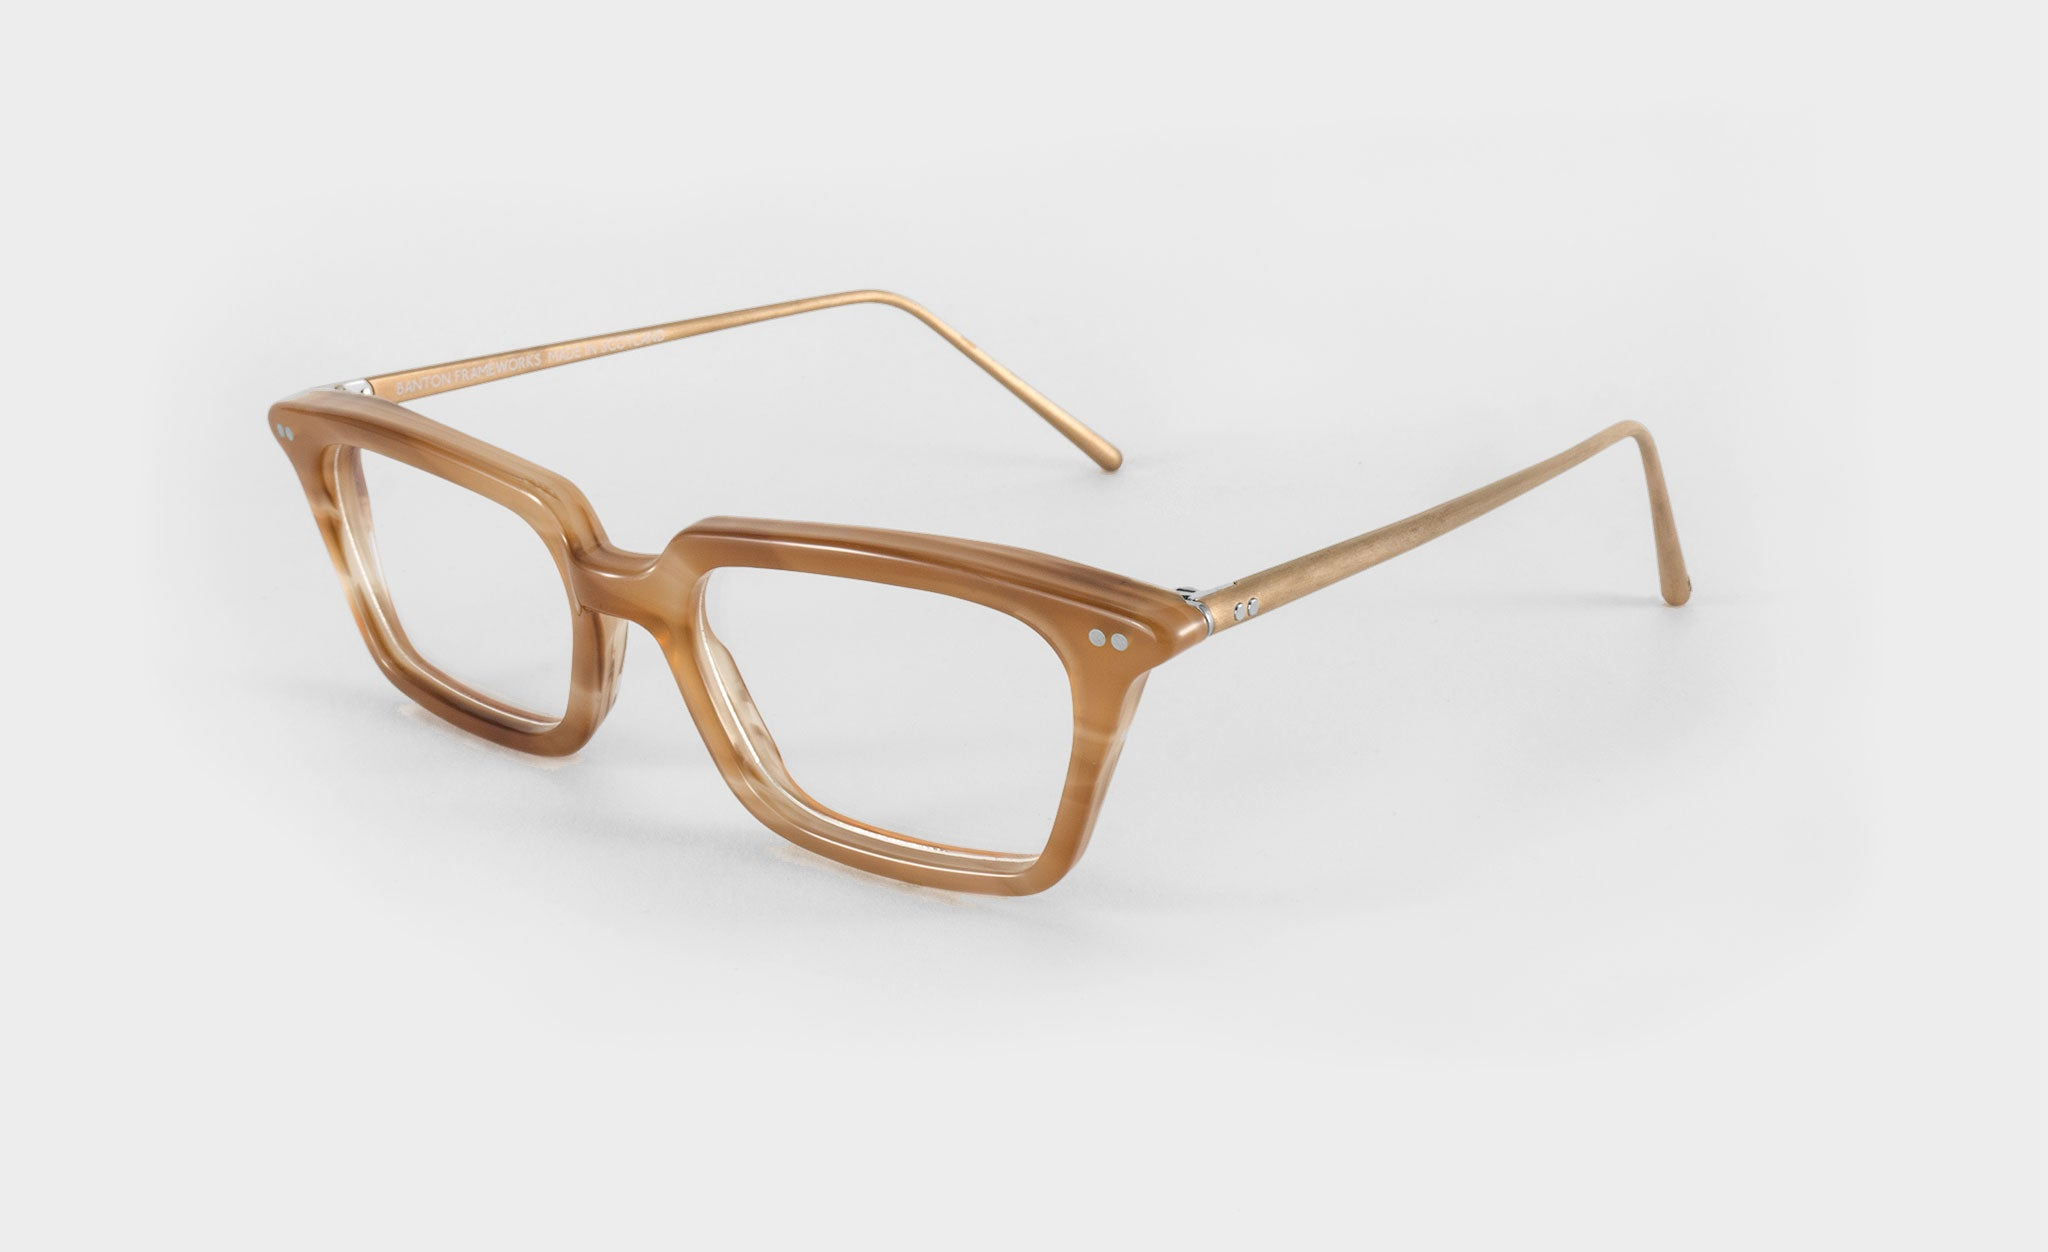 Optical-glasses-frame-h-rd-side-view